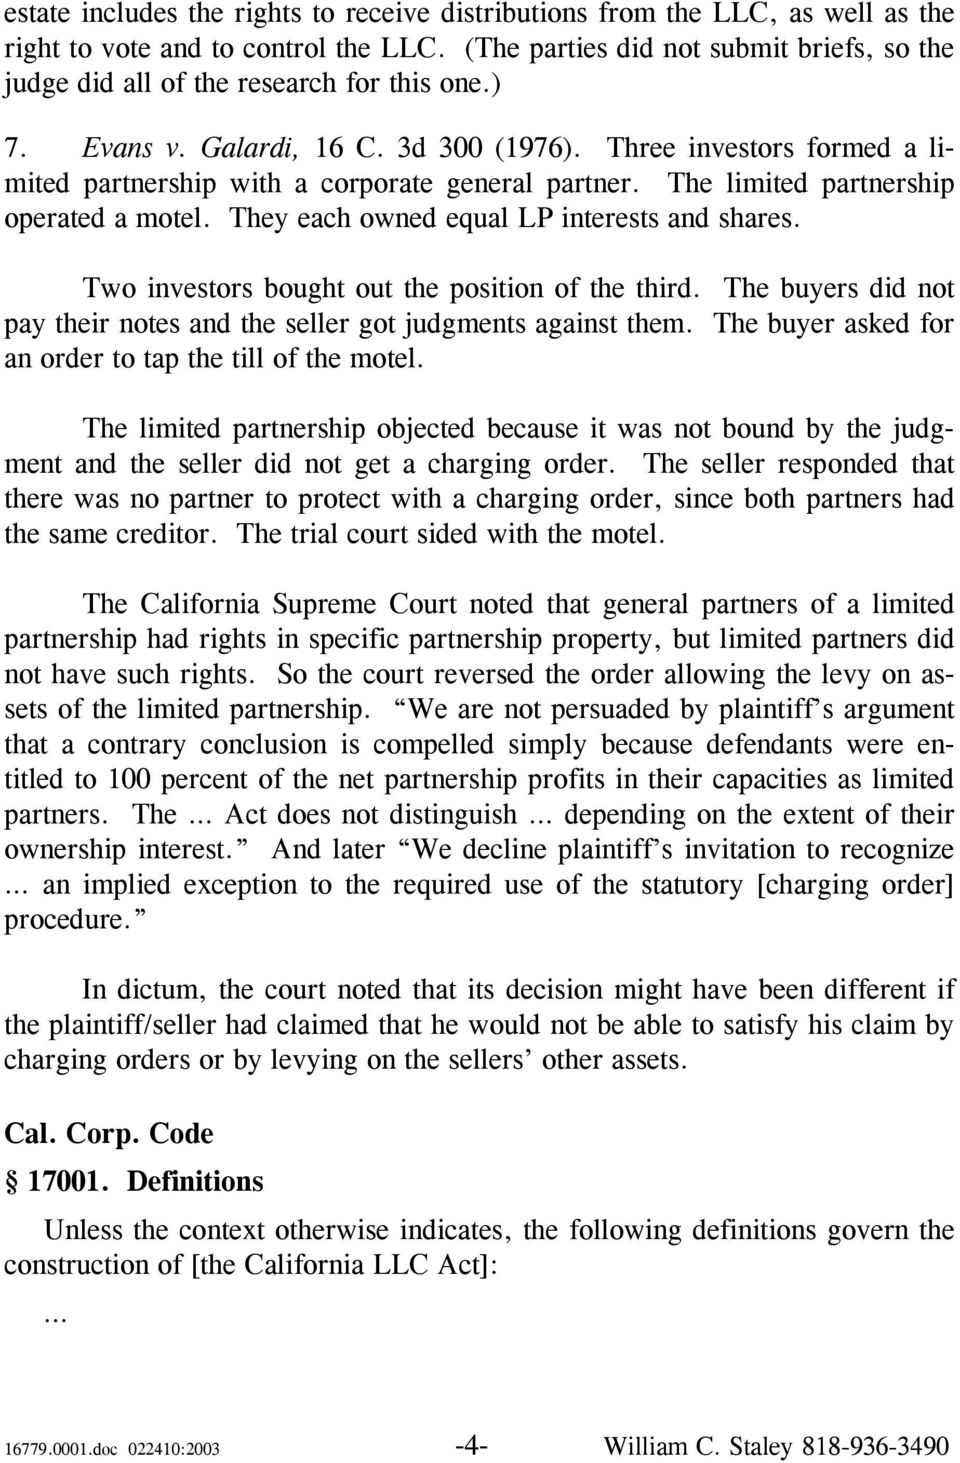 Three investors formed a limited partnership with a corporate general partner. The limited partnership operated a motel. They each owned equal LP interests and shares.